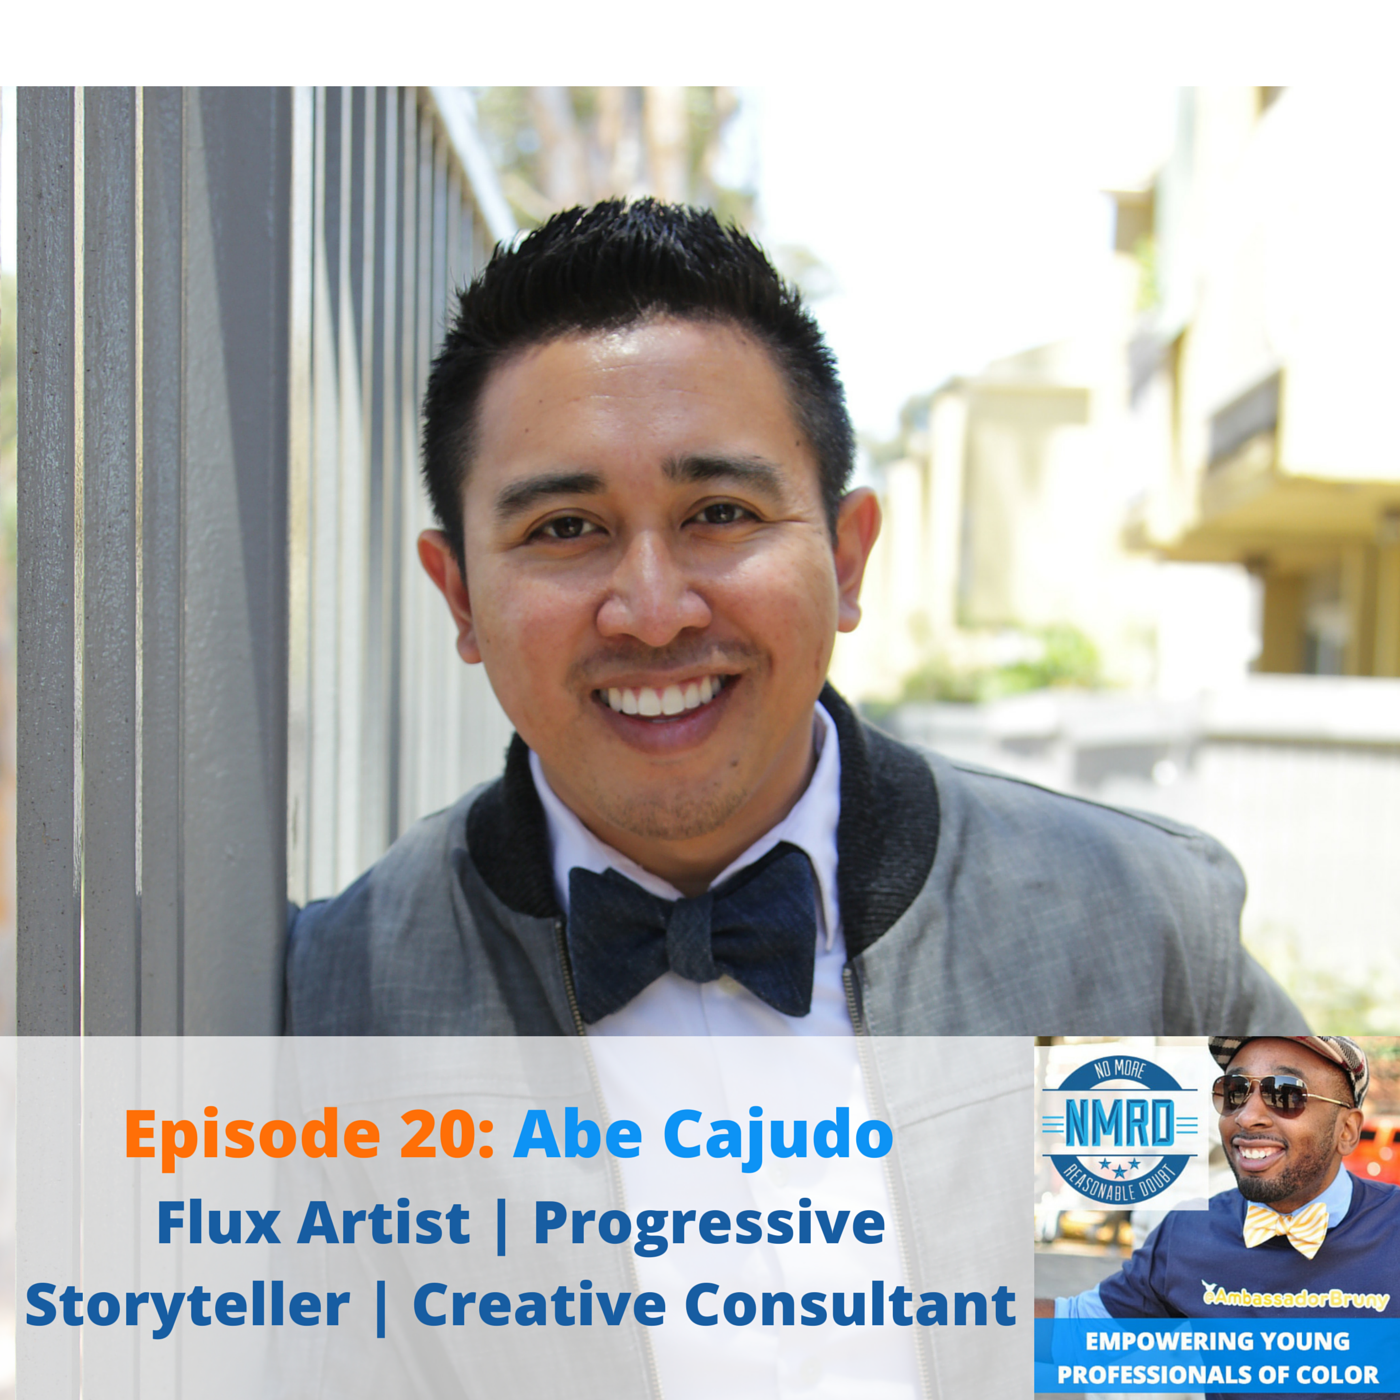 E20 – Meet Abe Cajudo, Progressive Storyteller | Empowering Young Professionals of Color at Work